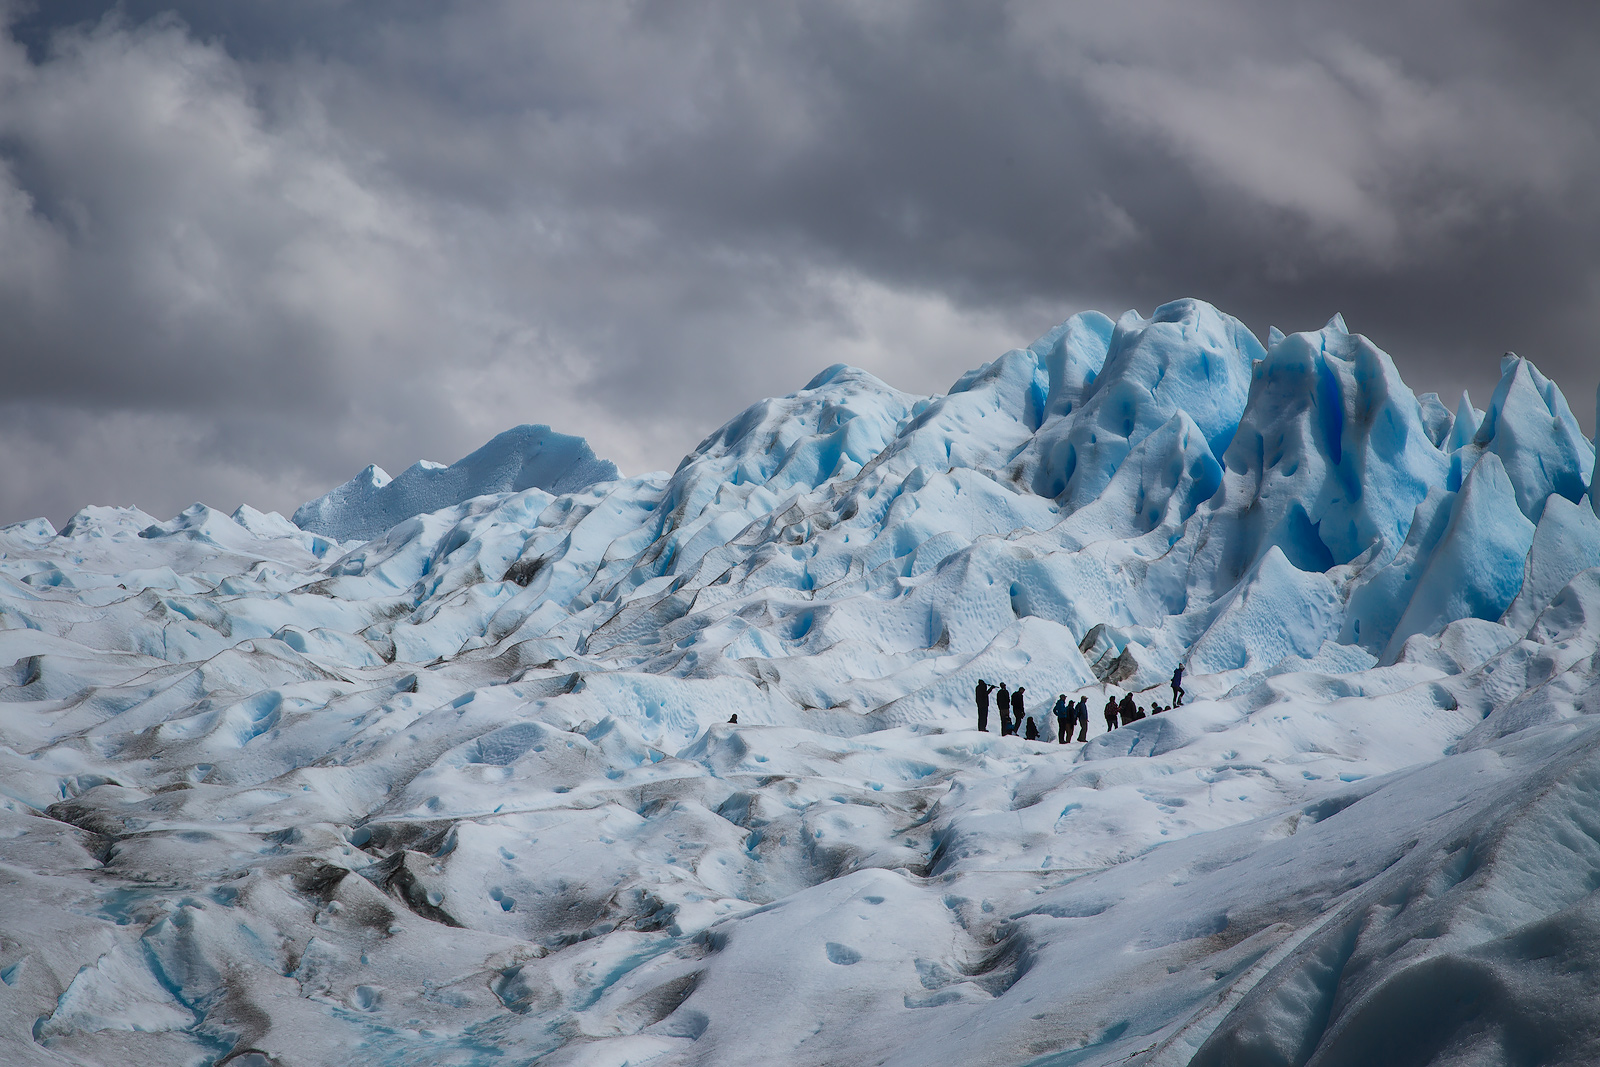 Spring, afternoon, andes mountains, argentina, beautiful, blue, glacier, ice, landscape, los glaciares national park, patagonia, perito moreno glacier, snow, south america, photo